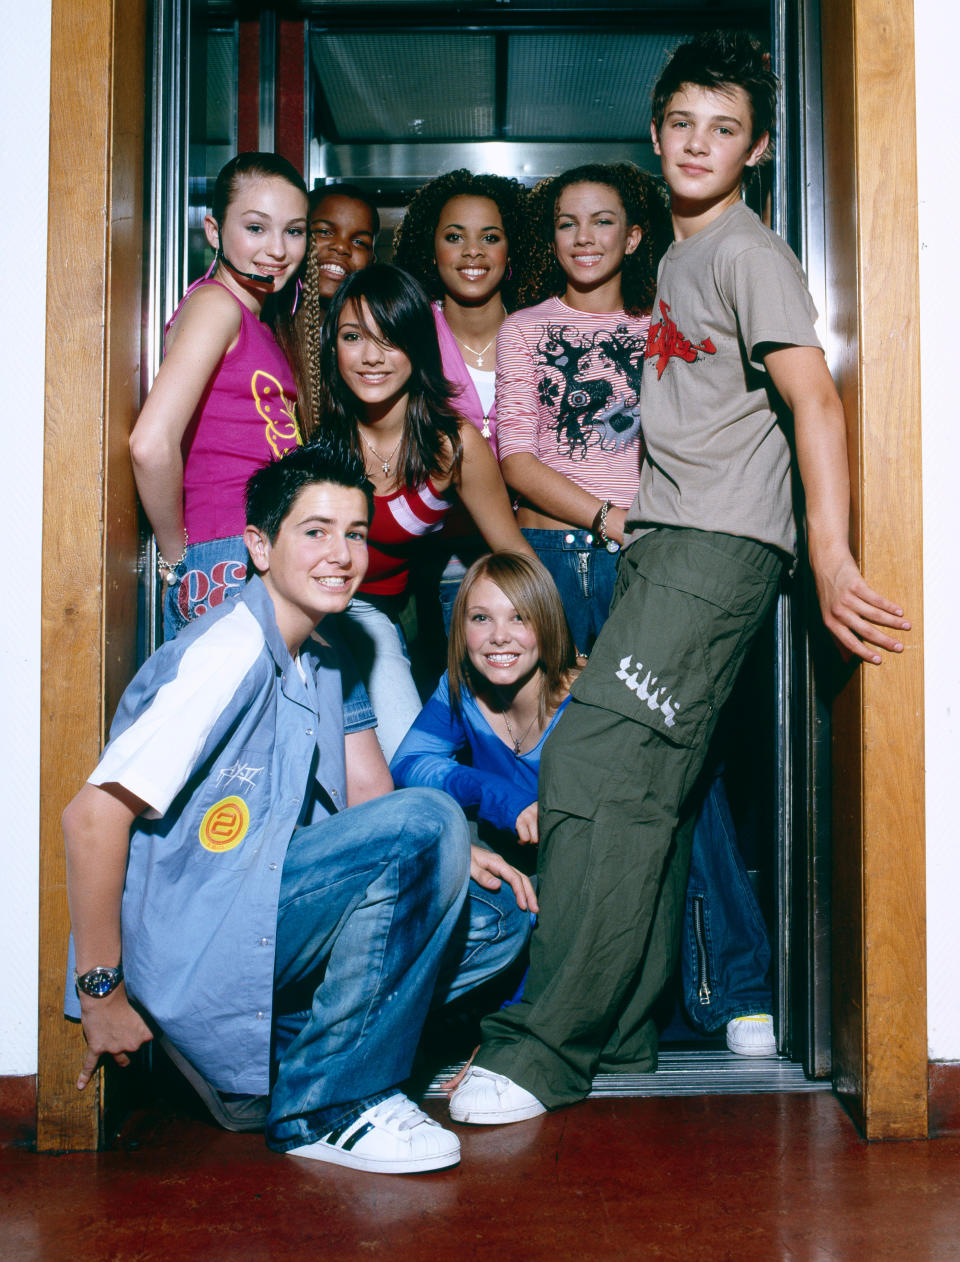 S Club Juniors backstage at a TV show, London, circa 2002. Left to right (back) Daisy Evans, Jay Asforis, Frankie Sandford, Rochelle Wiseman, Stacey McClean, Calvin Goldspink, (kneeling) Aaron Renfree, Hannah Richings. (Photo by David Tonge/Getty Images)